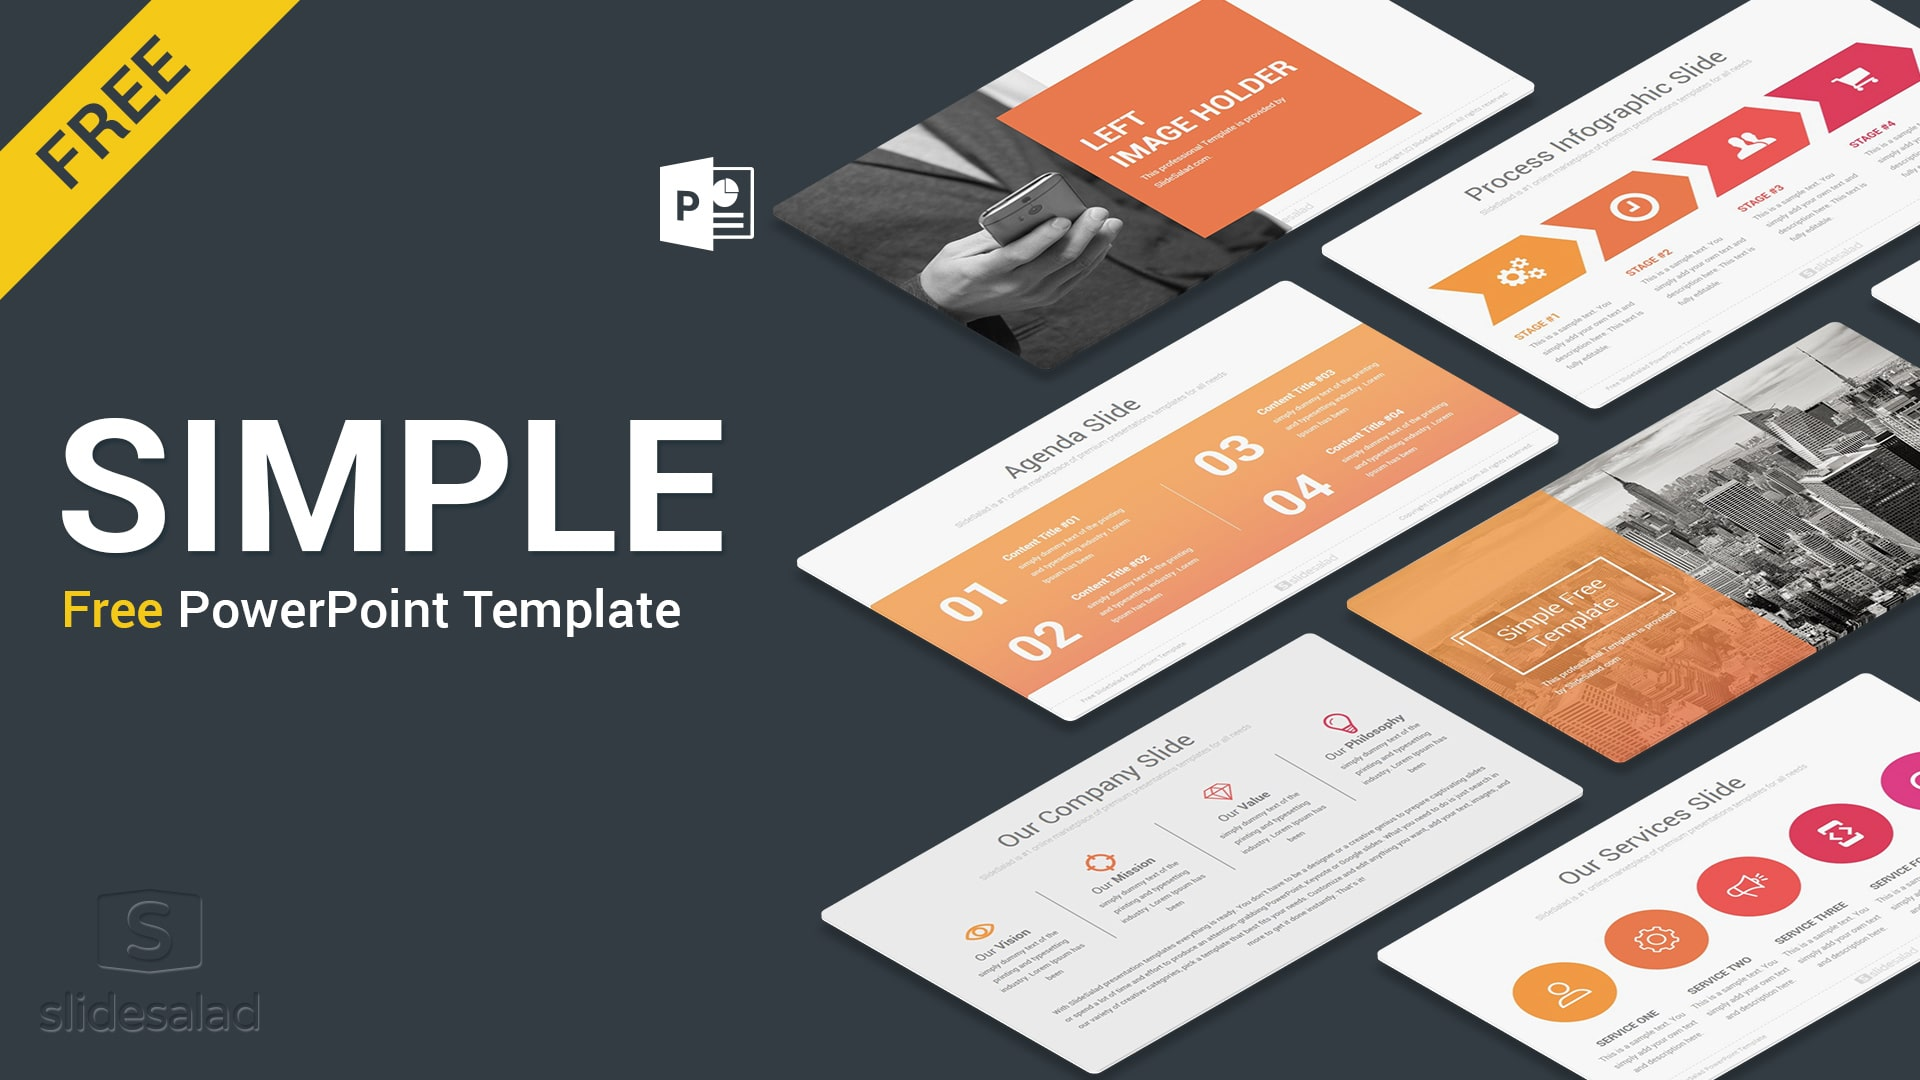 Simple Free PowerPoint Presentation Templates – Top Minimalist PPT Template for Comprehensive Presentations